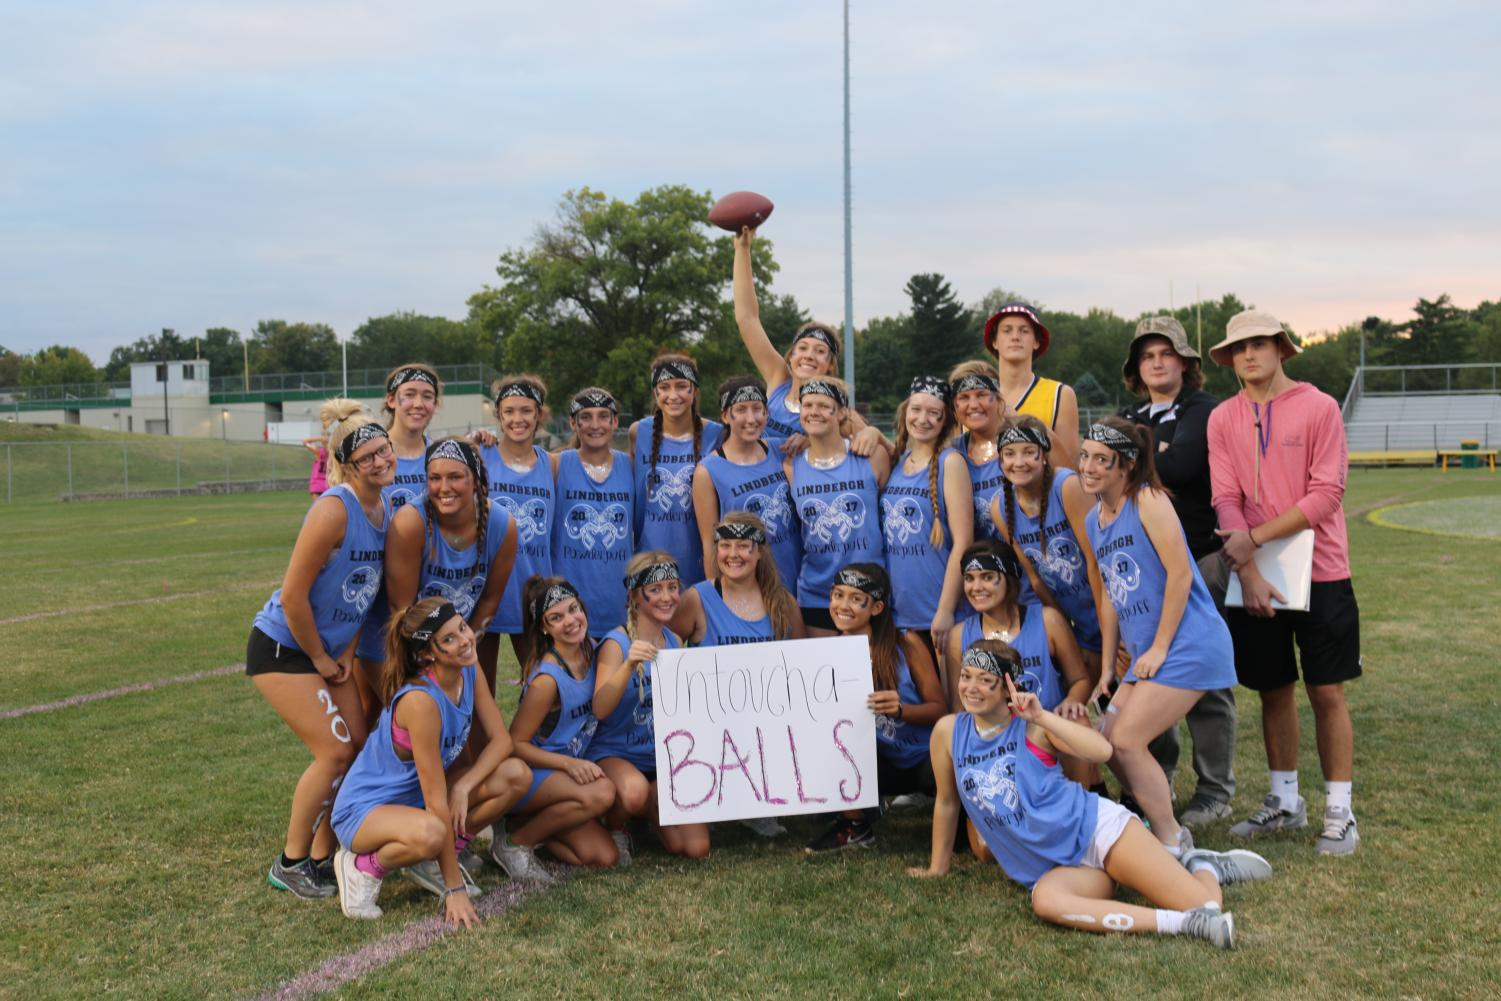 Powderpuff champions, senior team 'UntouchaBalls'